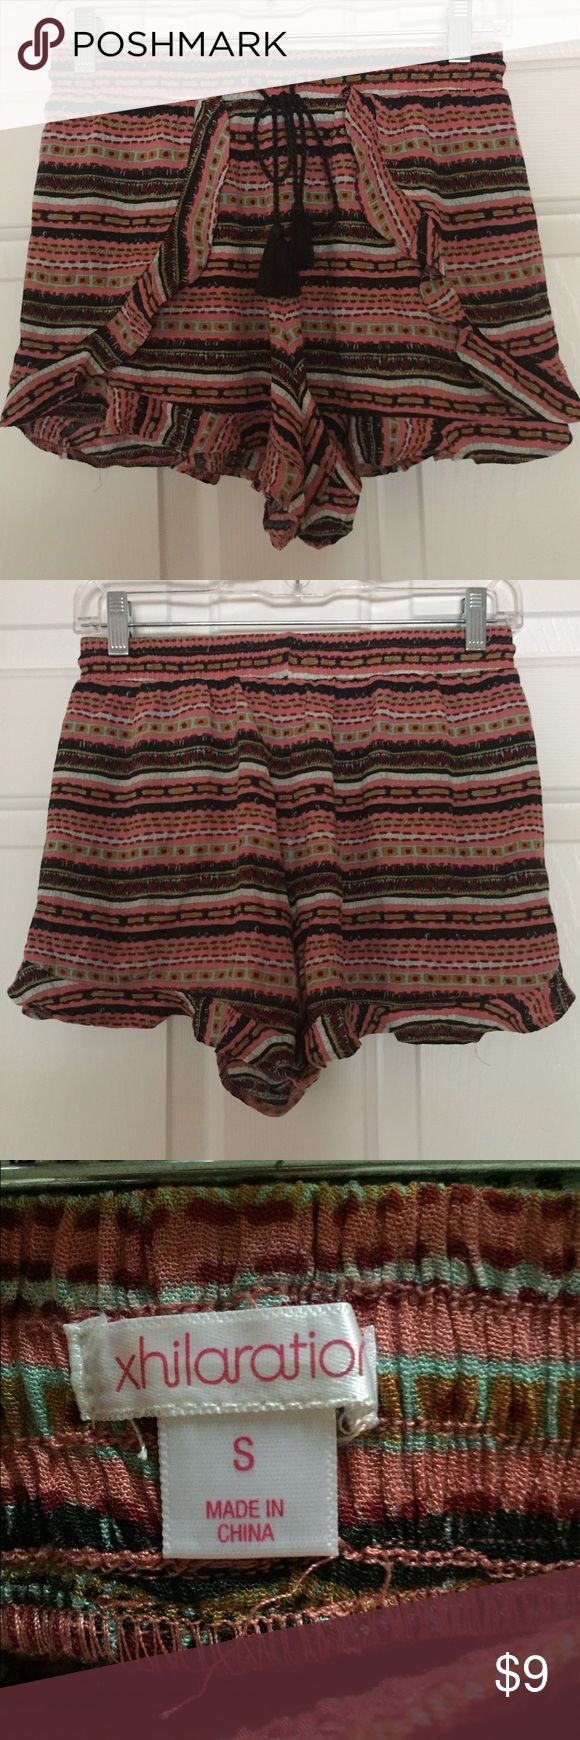 Aztec print summer shorts with ruffle trim Small Summer beach shorts with cute Aztec prints size Small. Ruffle trimmed. Brand is Xhiliration. Fabric Rayon. In new without tag condition. Perfect for this upcoming summer! Thanks for looking bundle and save! Price is firm unless bundled. Xhilaration Shorts